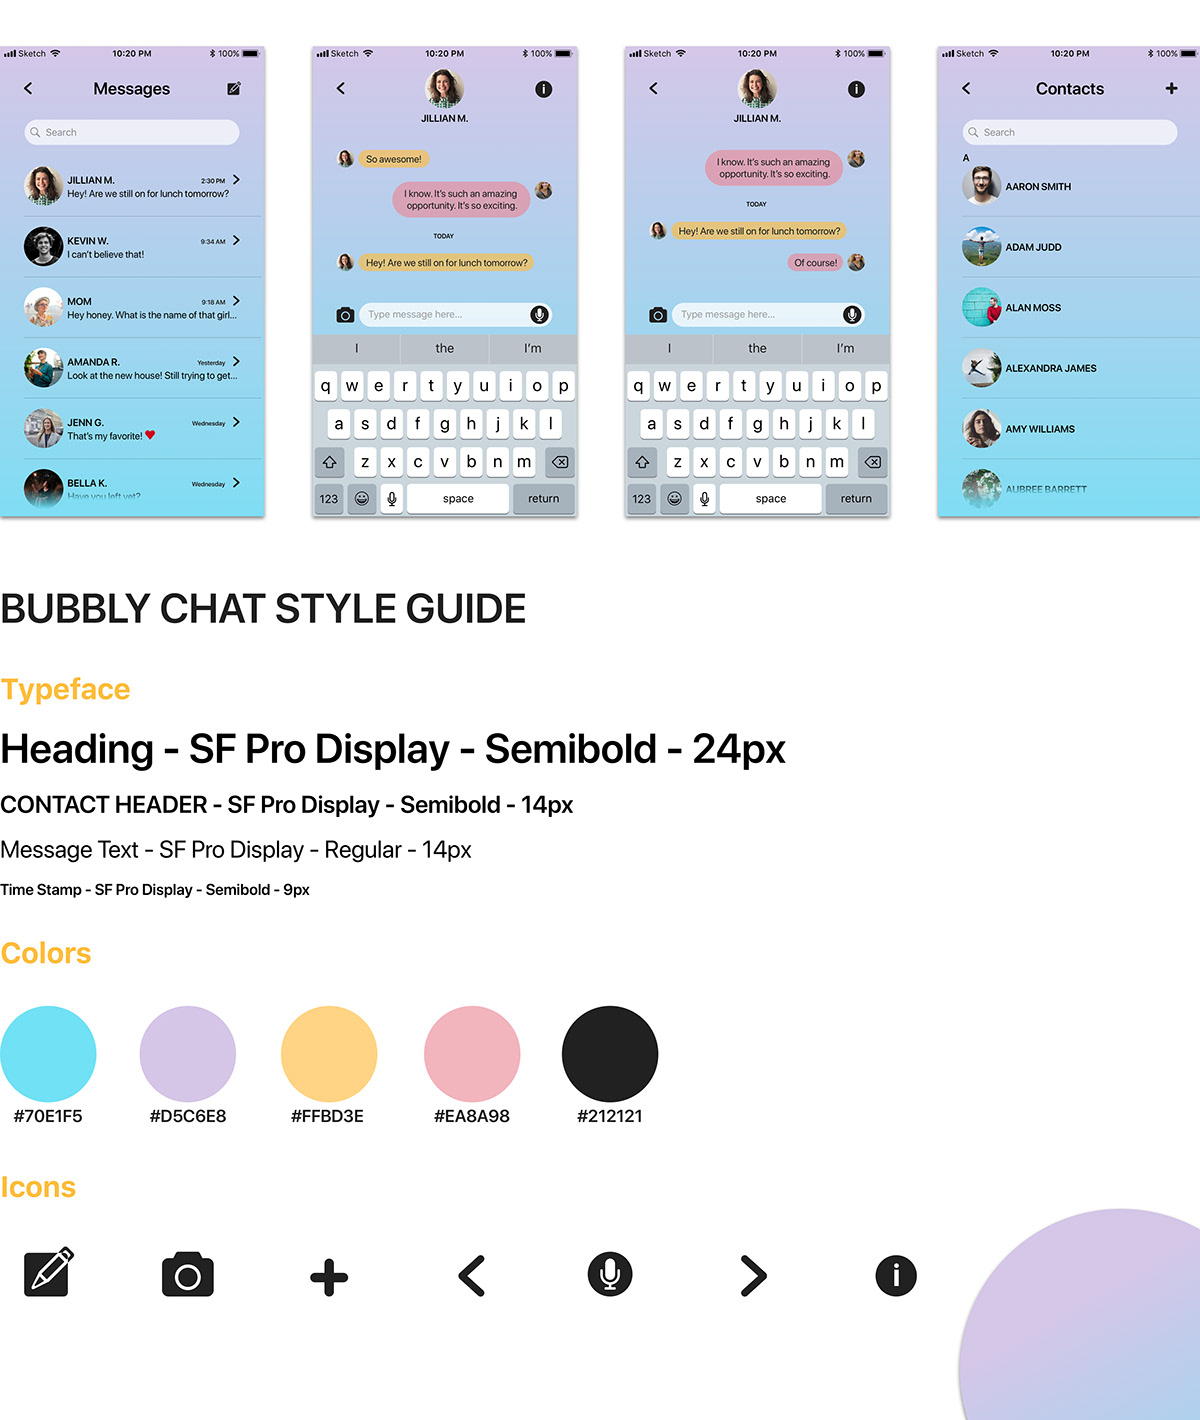 bubbly chat on behance